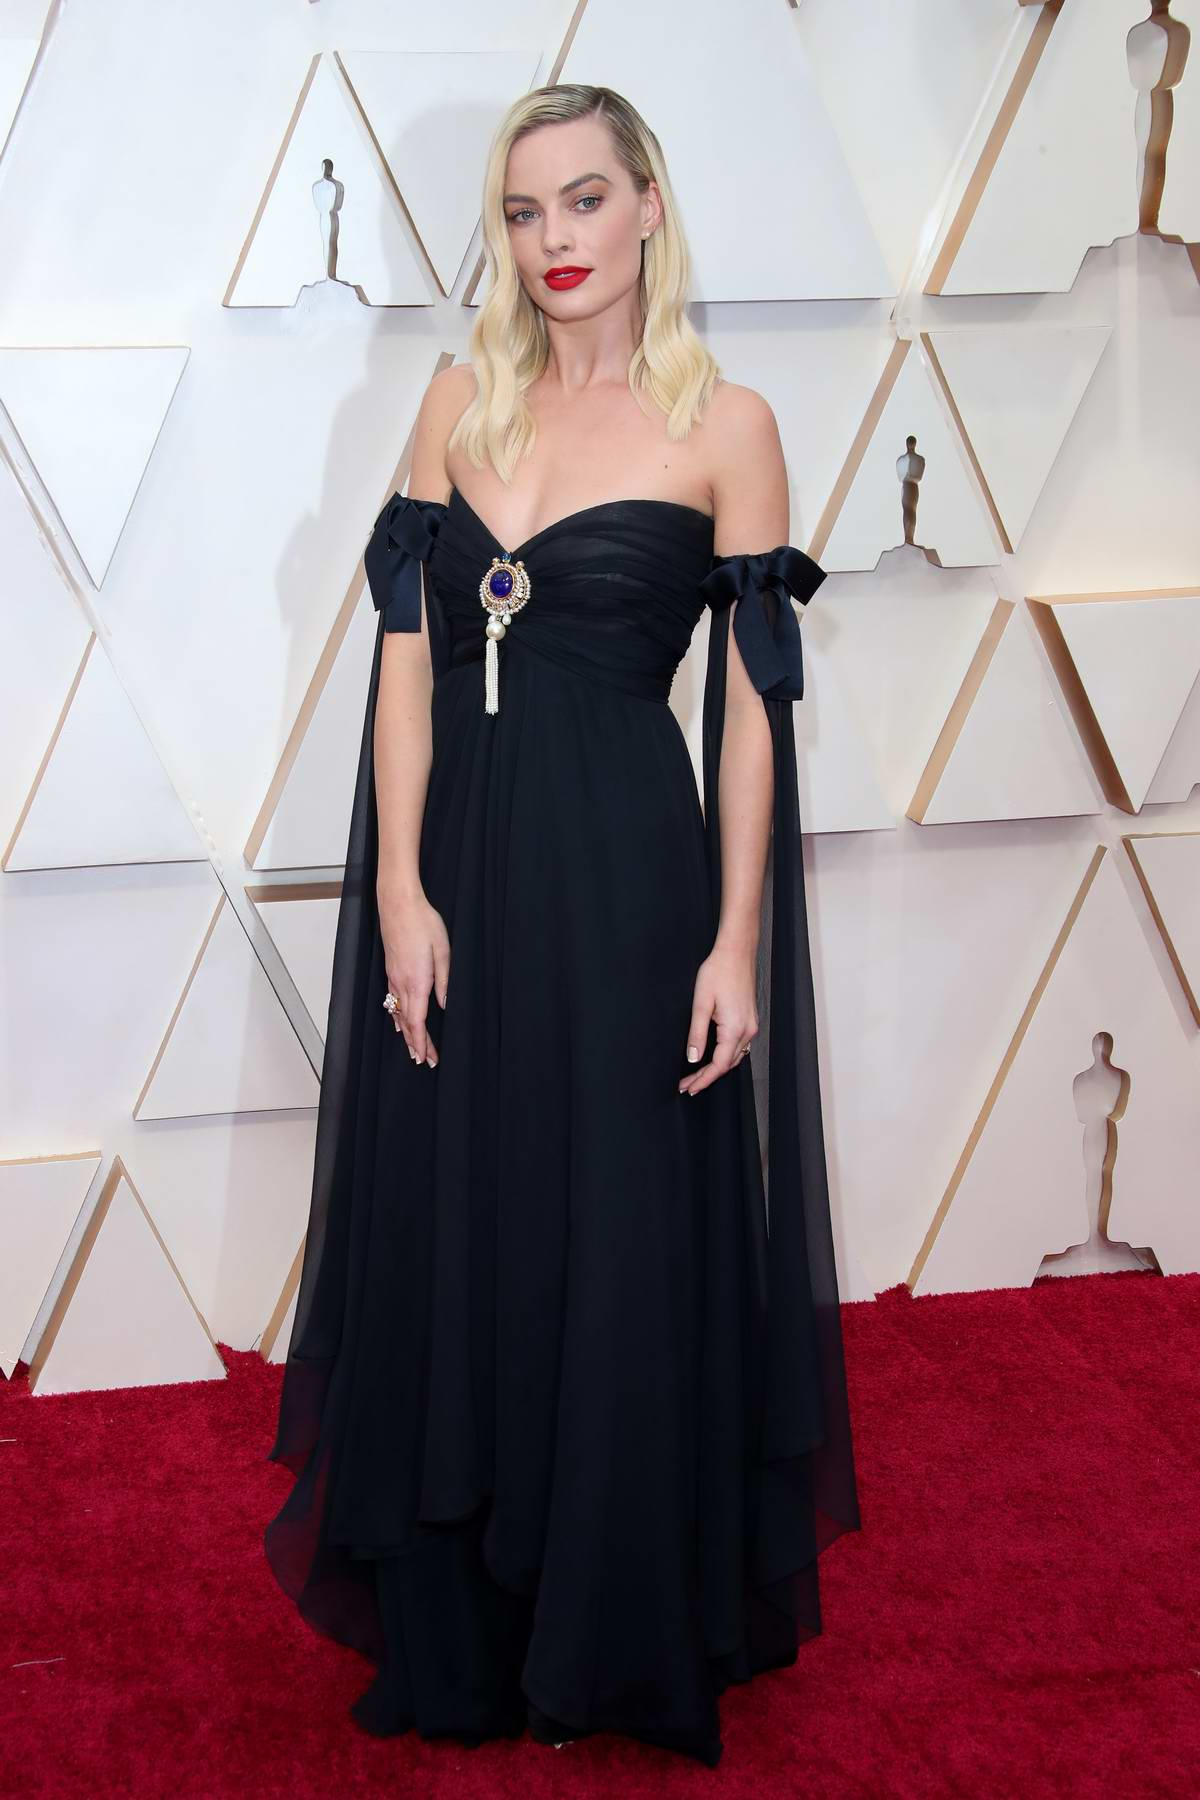 Margot Robbie attends the 92nd Annual Academy Awards at Dolby Theatre in Los Angeles